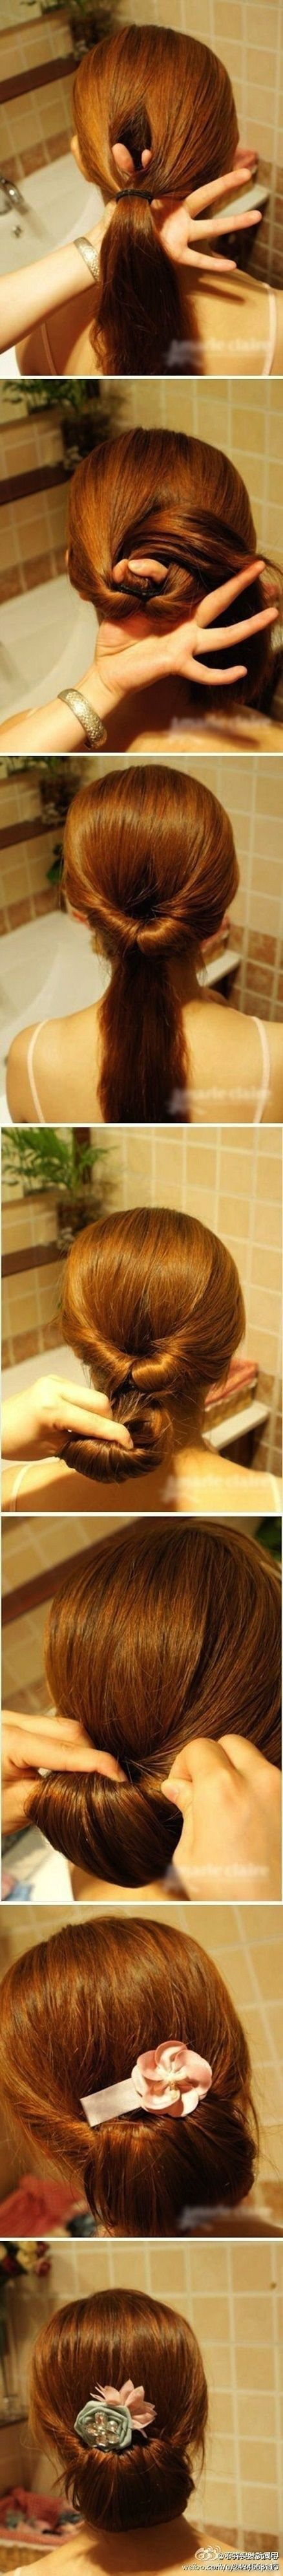 Hairstyles For Busy Mornings8